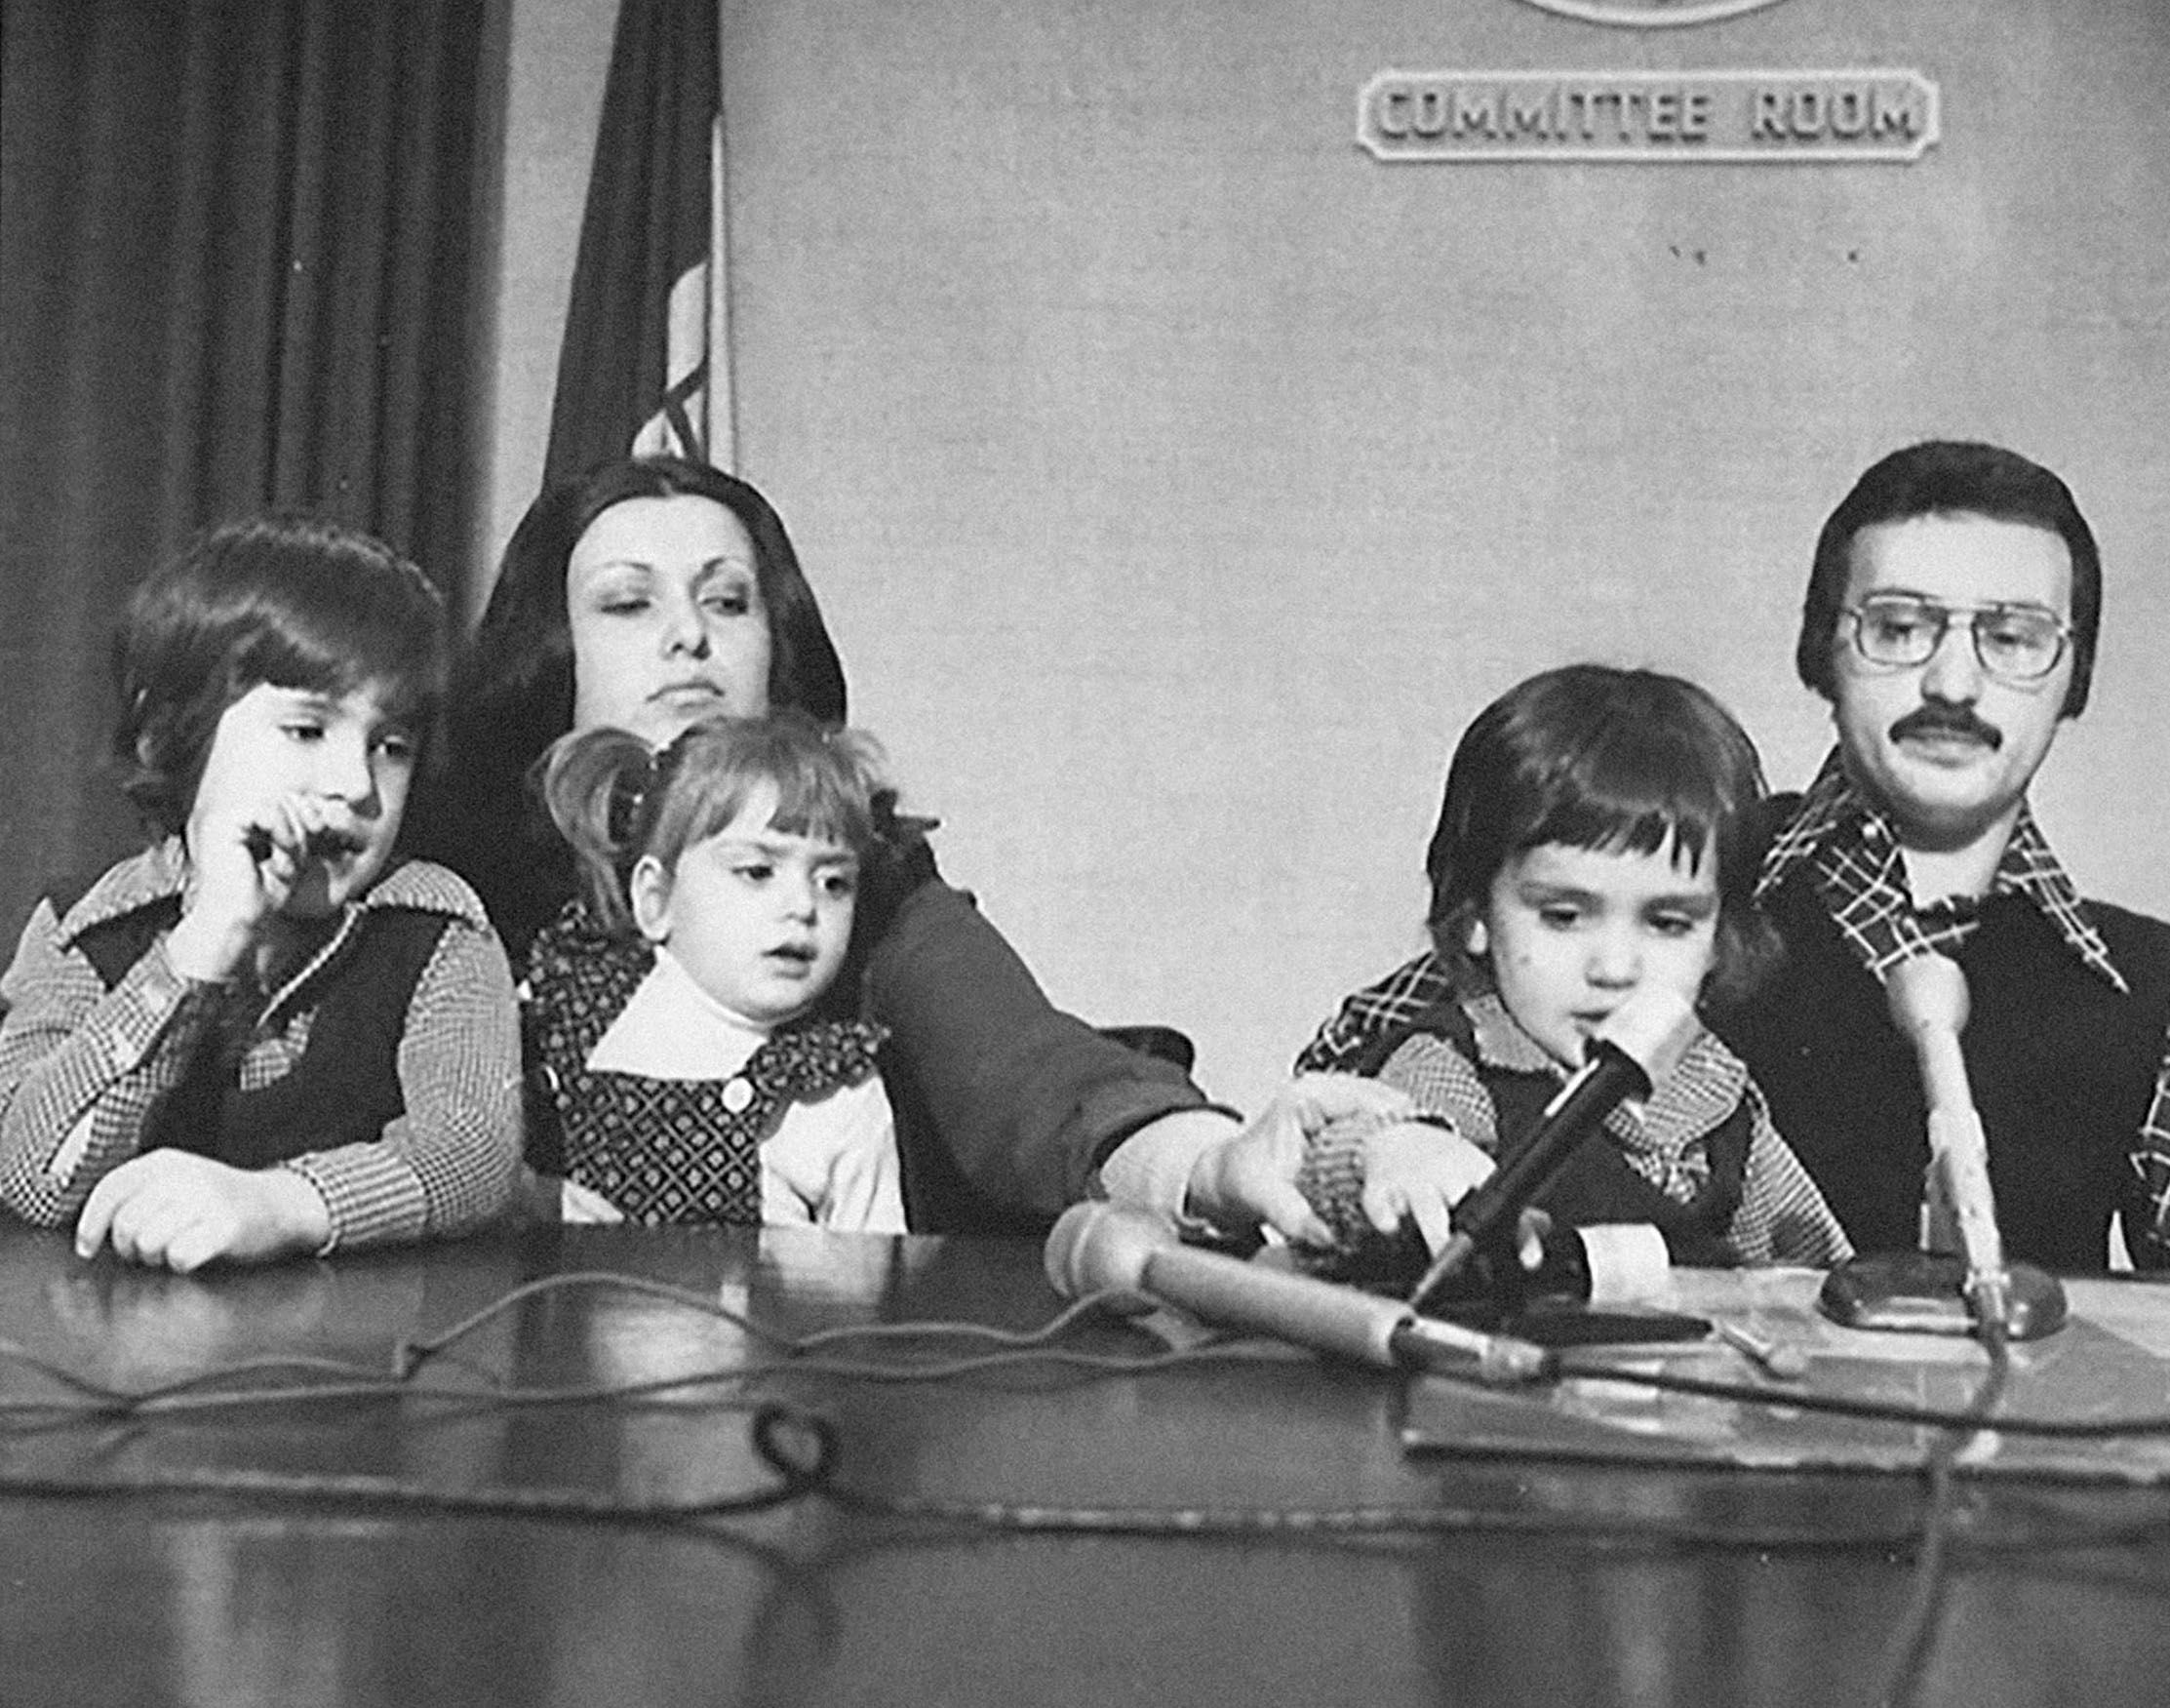 Anthony, left, and Joe in the mid-1970s, with their mother, Patricia; their sister, Gabriella; and their politician father, Basil, at Cleveland City Hall.